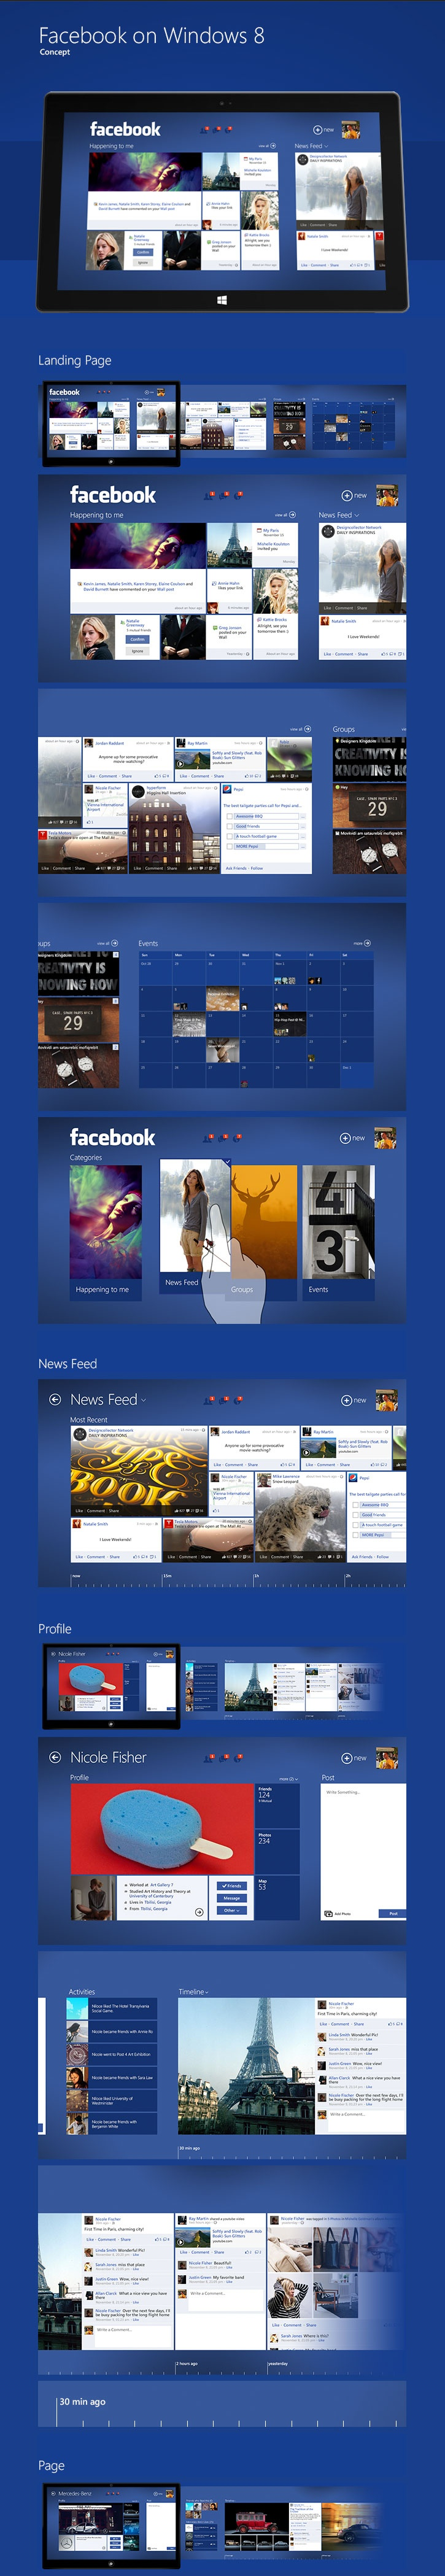 An interesting take on a Facebook Windows 8 app screens.